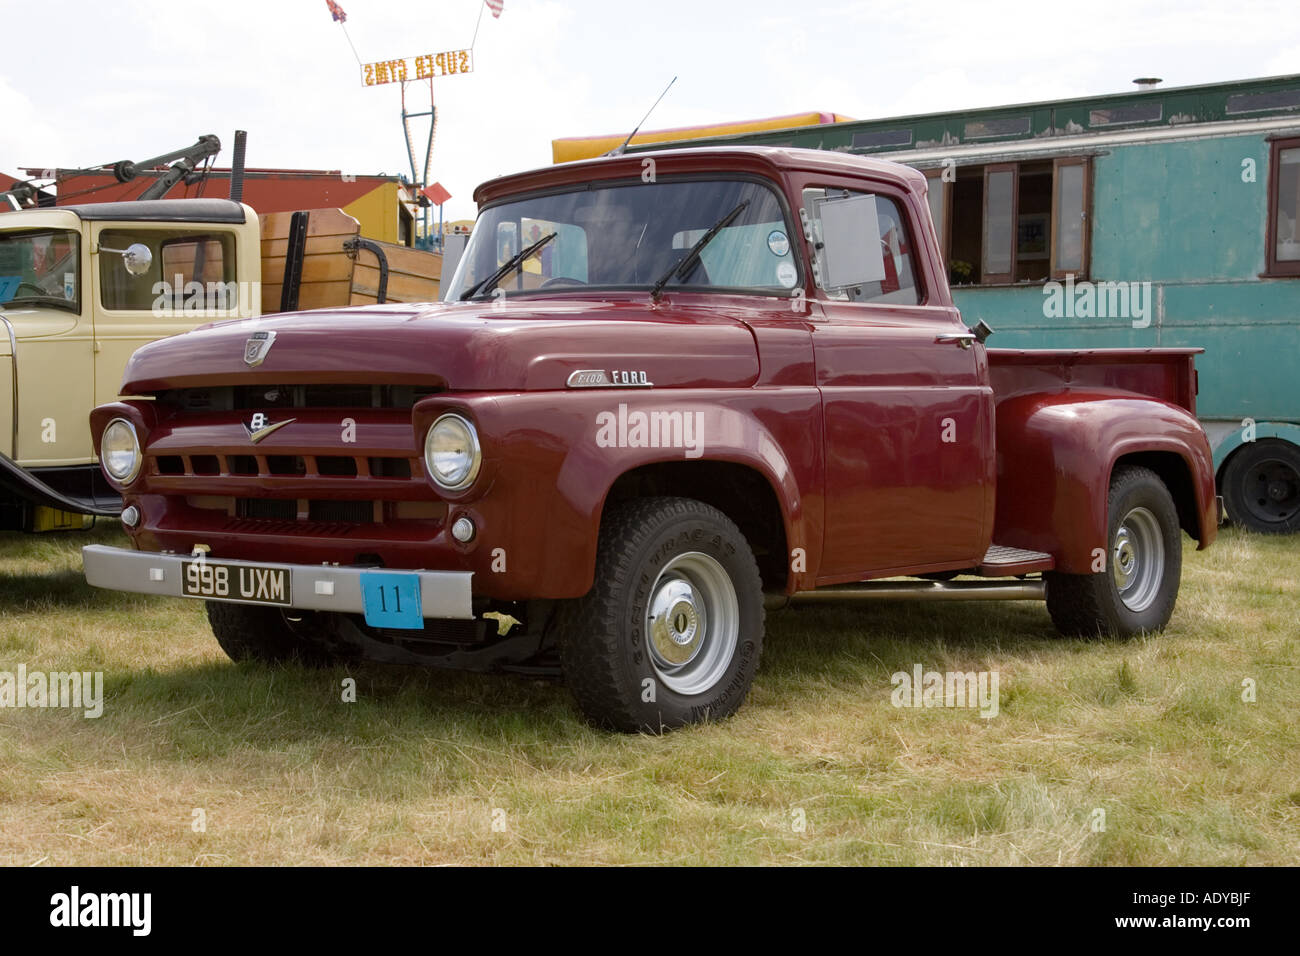 Ford F100 Pickup Truck Stock Photos 1954 Pick Up Ultility On Display At Rougham Fair In June 2006 Image